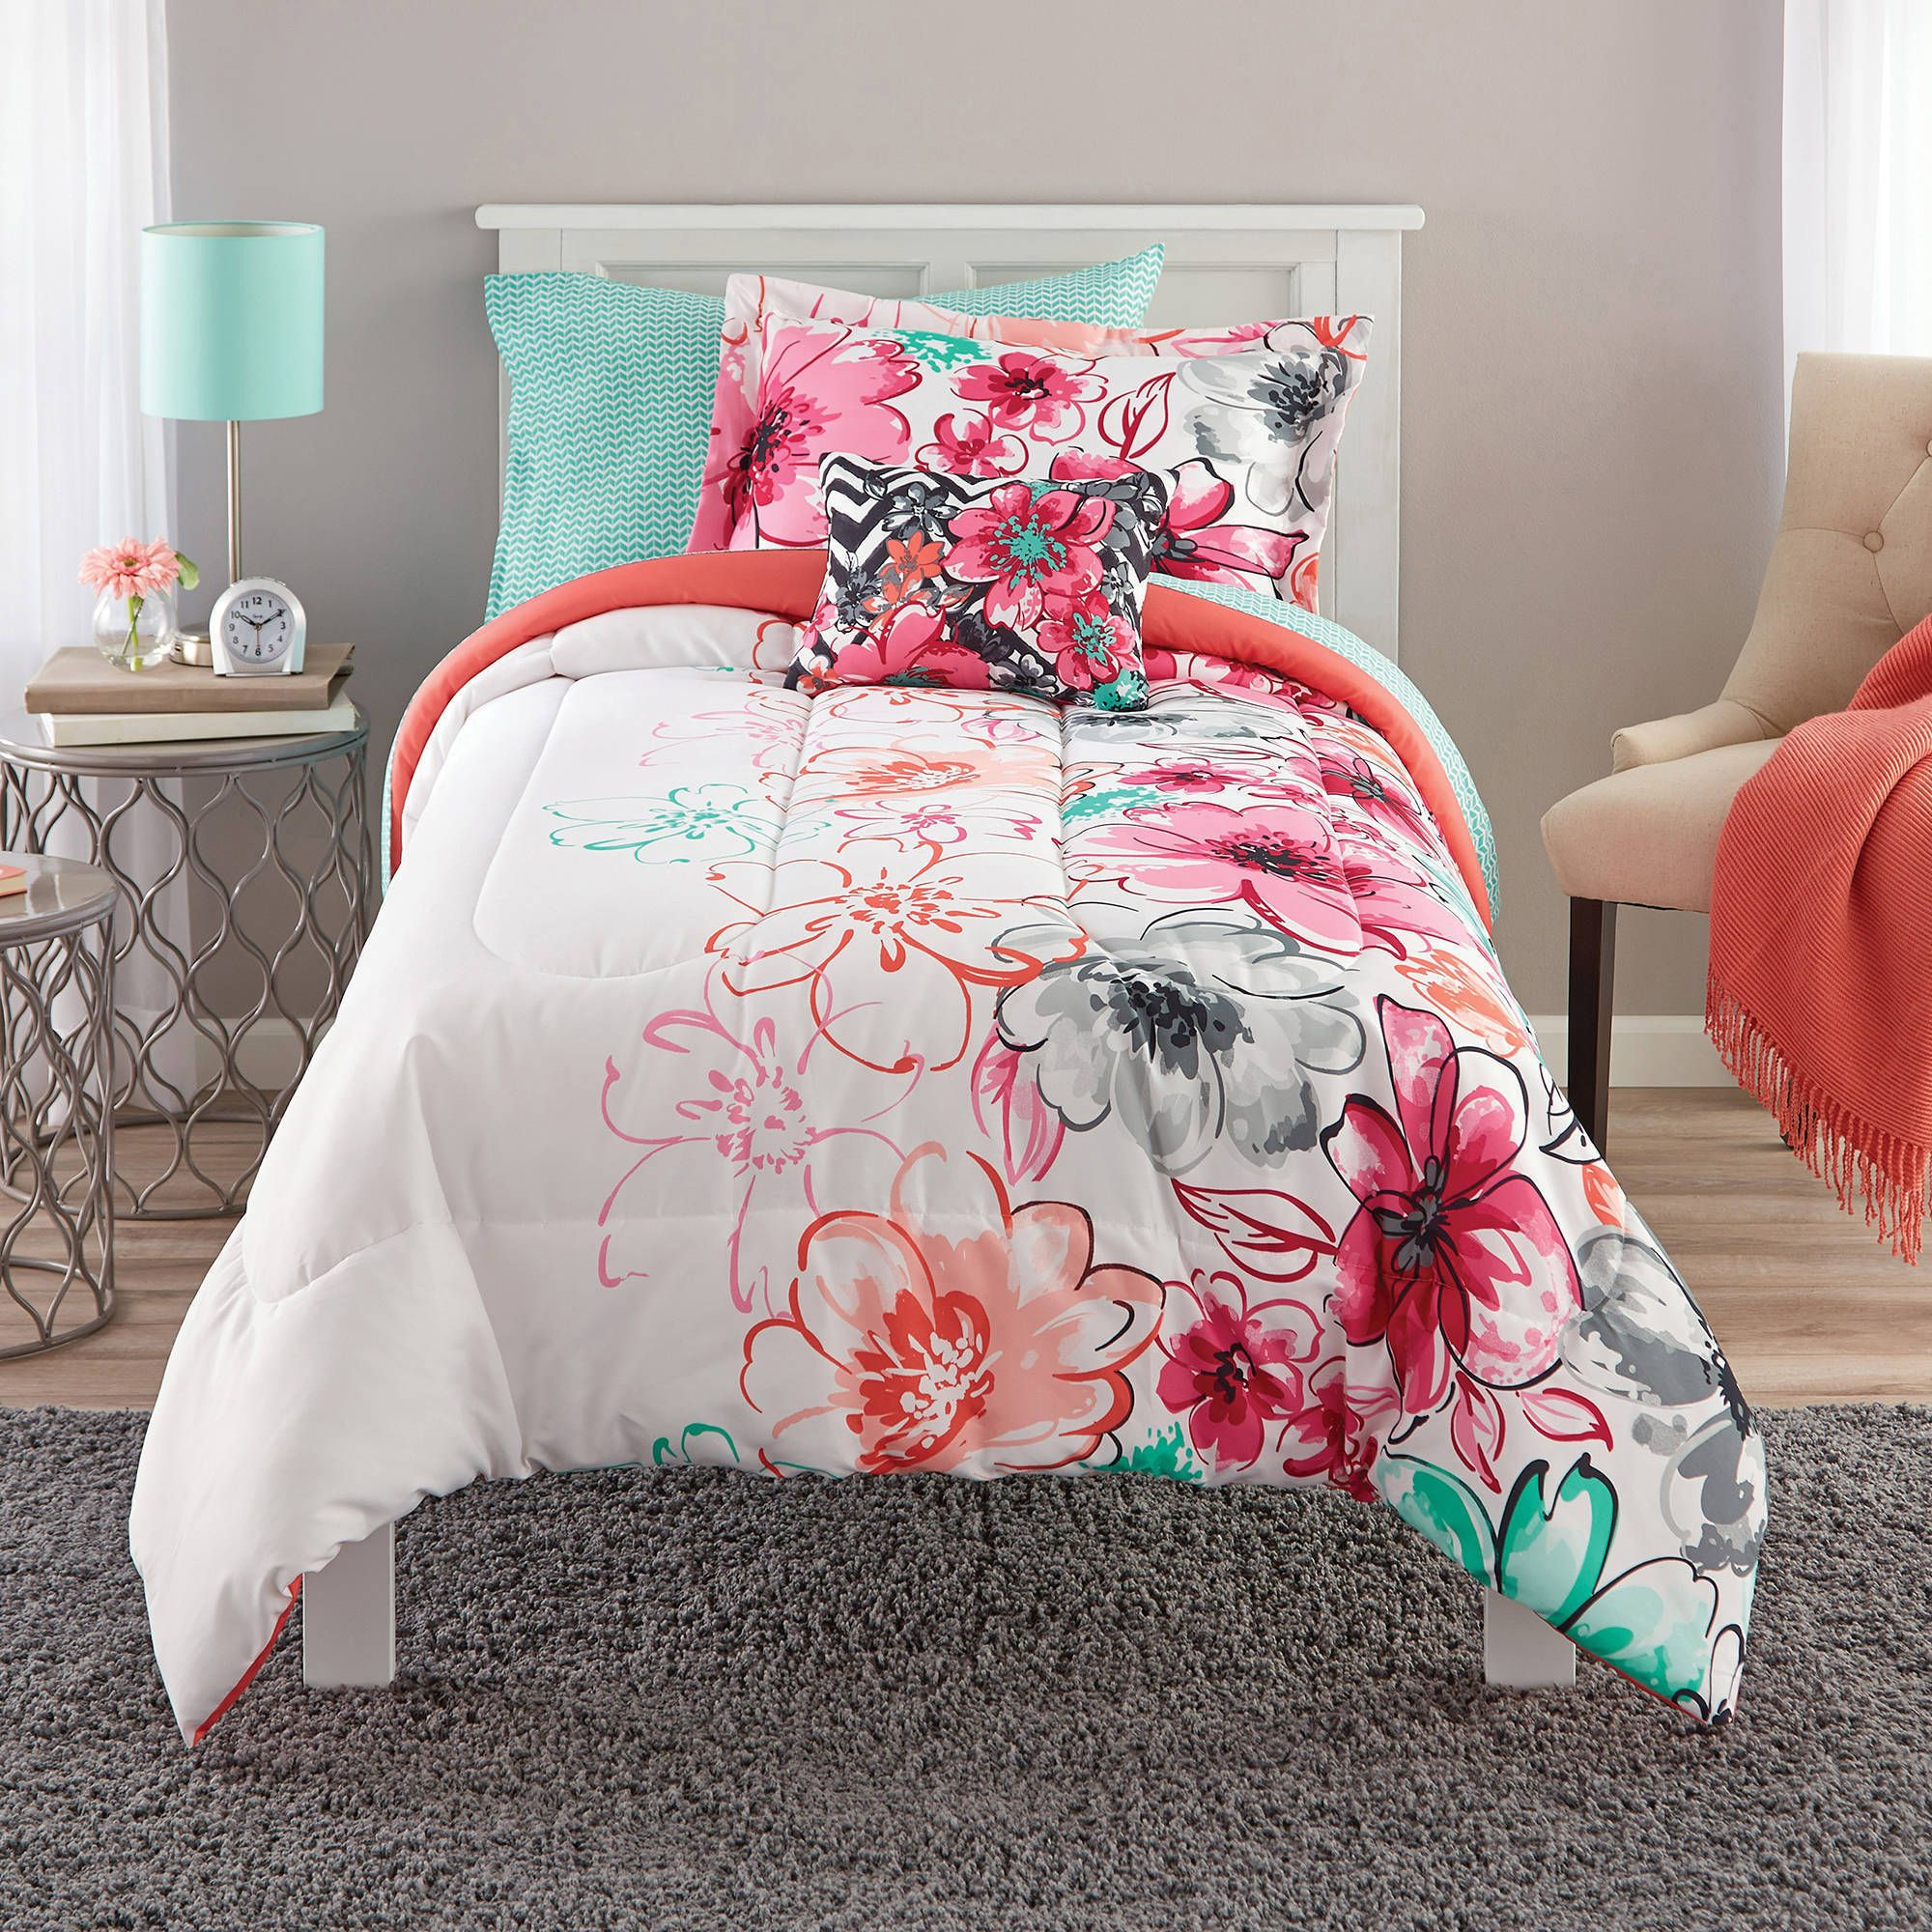 comforter watercolor pin a floral set mainstays com in at bag where coordinated to buy bedding bed walmart duvet